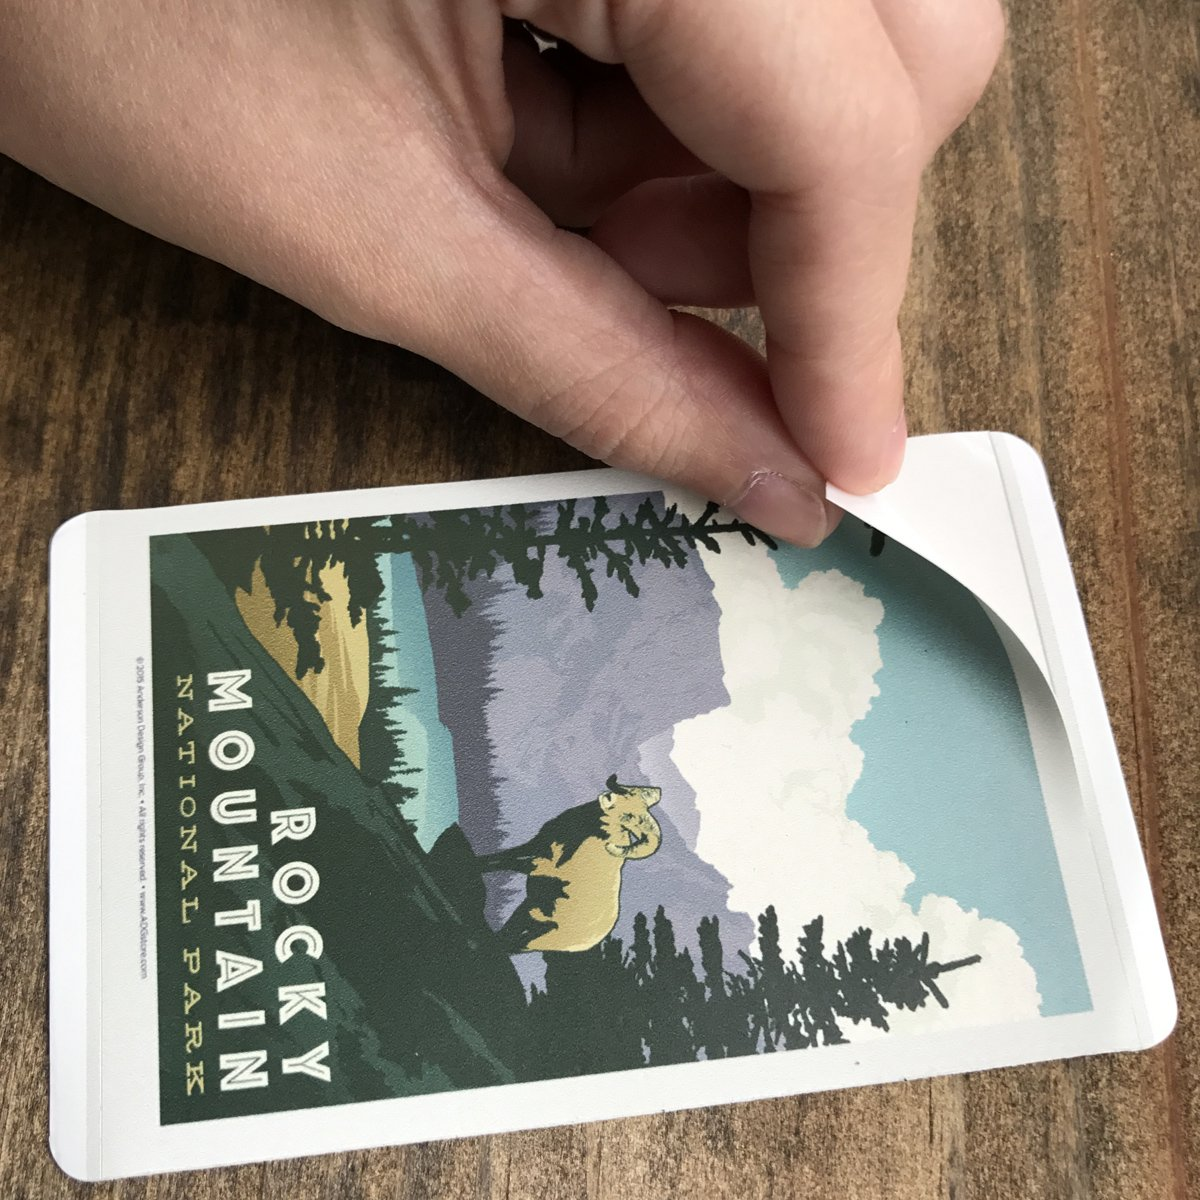 59-Piece Deluxe National Parks Sticker Set by Anderson Design Group (Image #4)